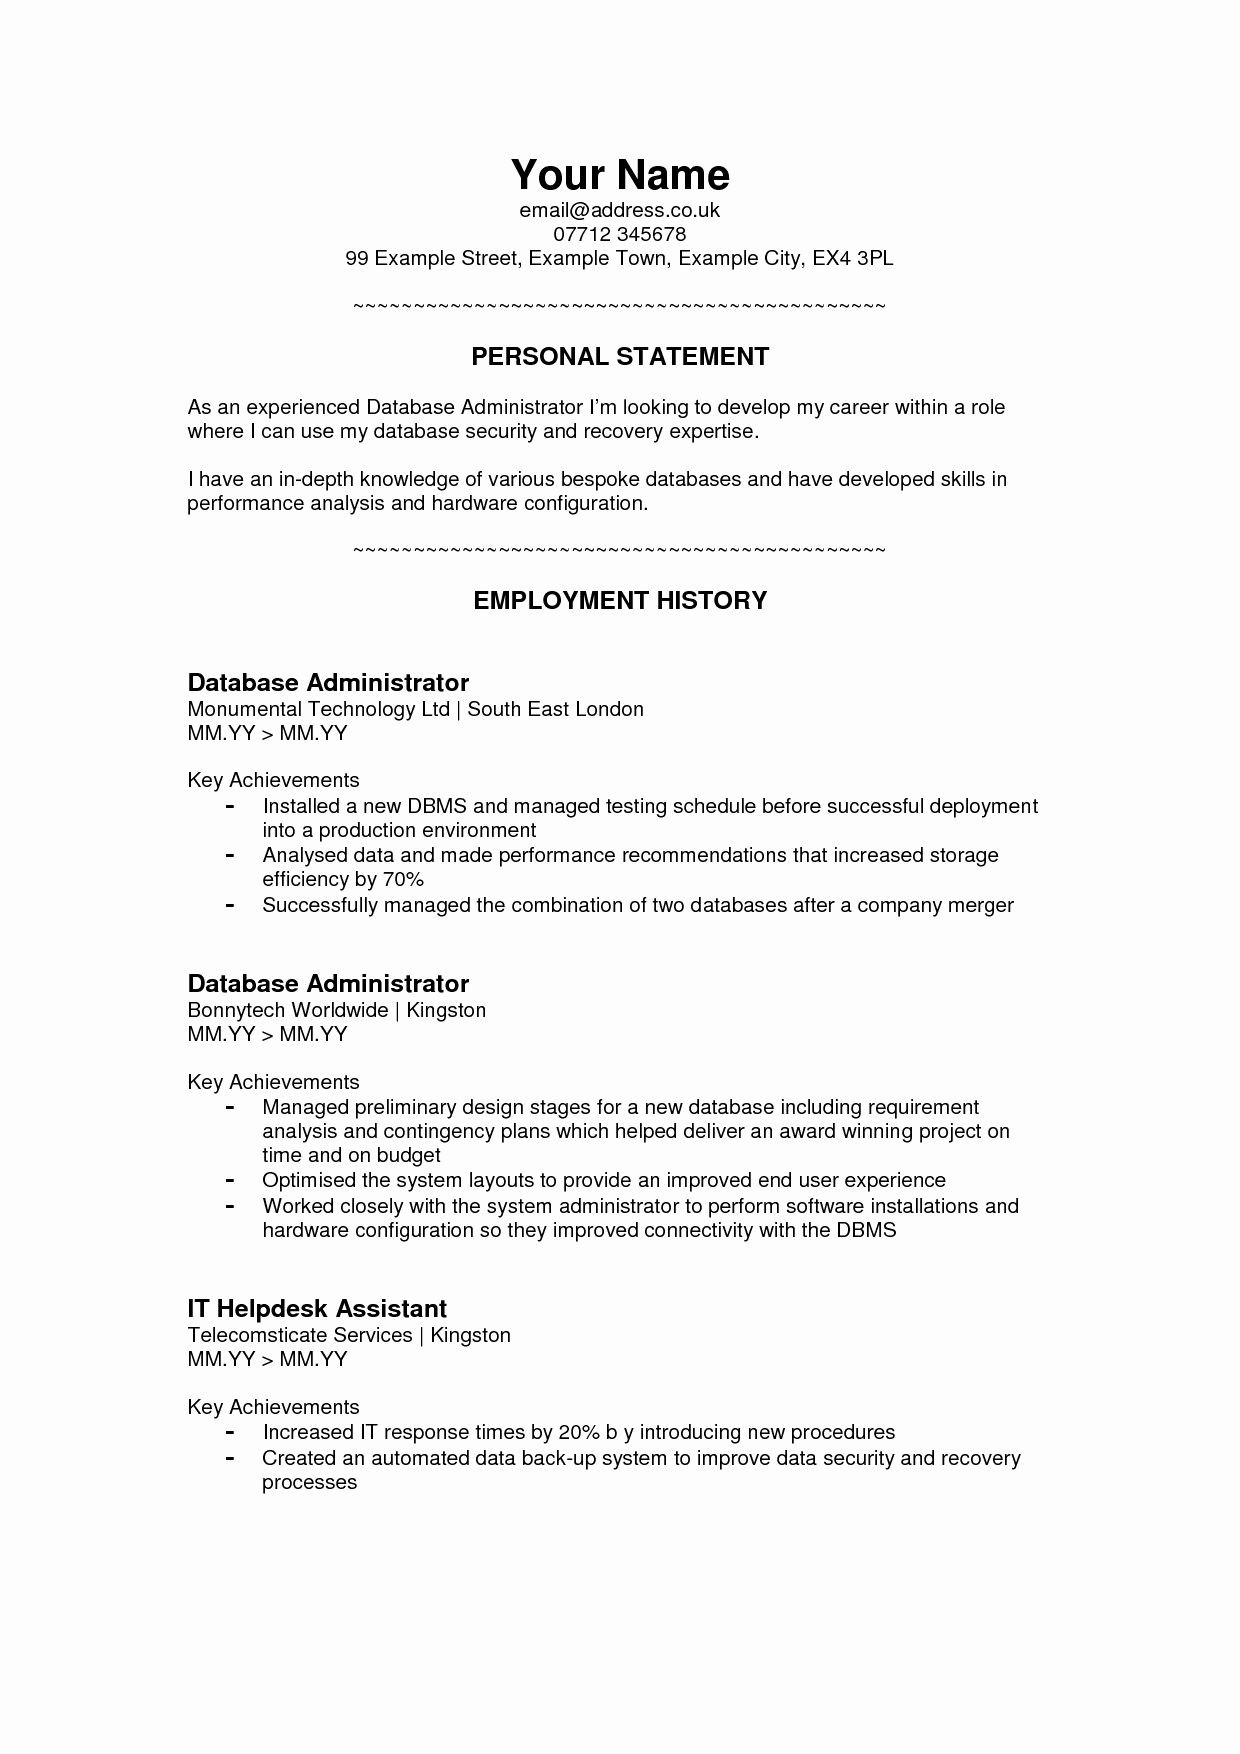 letter m template example-Letter M Elegant the Importance A Cover Letter Awesome Elegant Recent Graduate Letter M 10-i